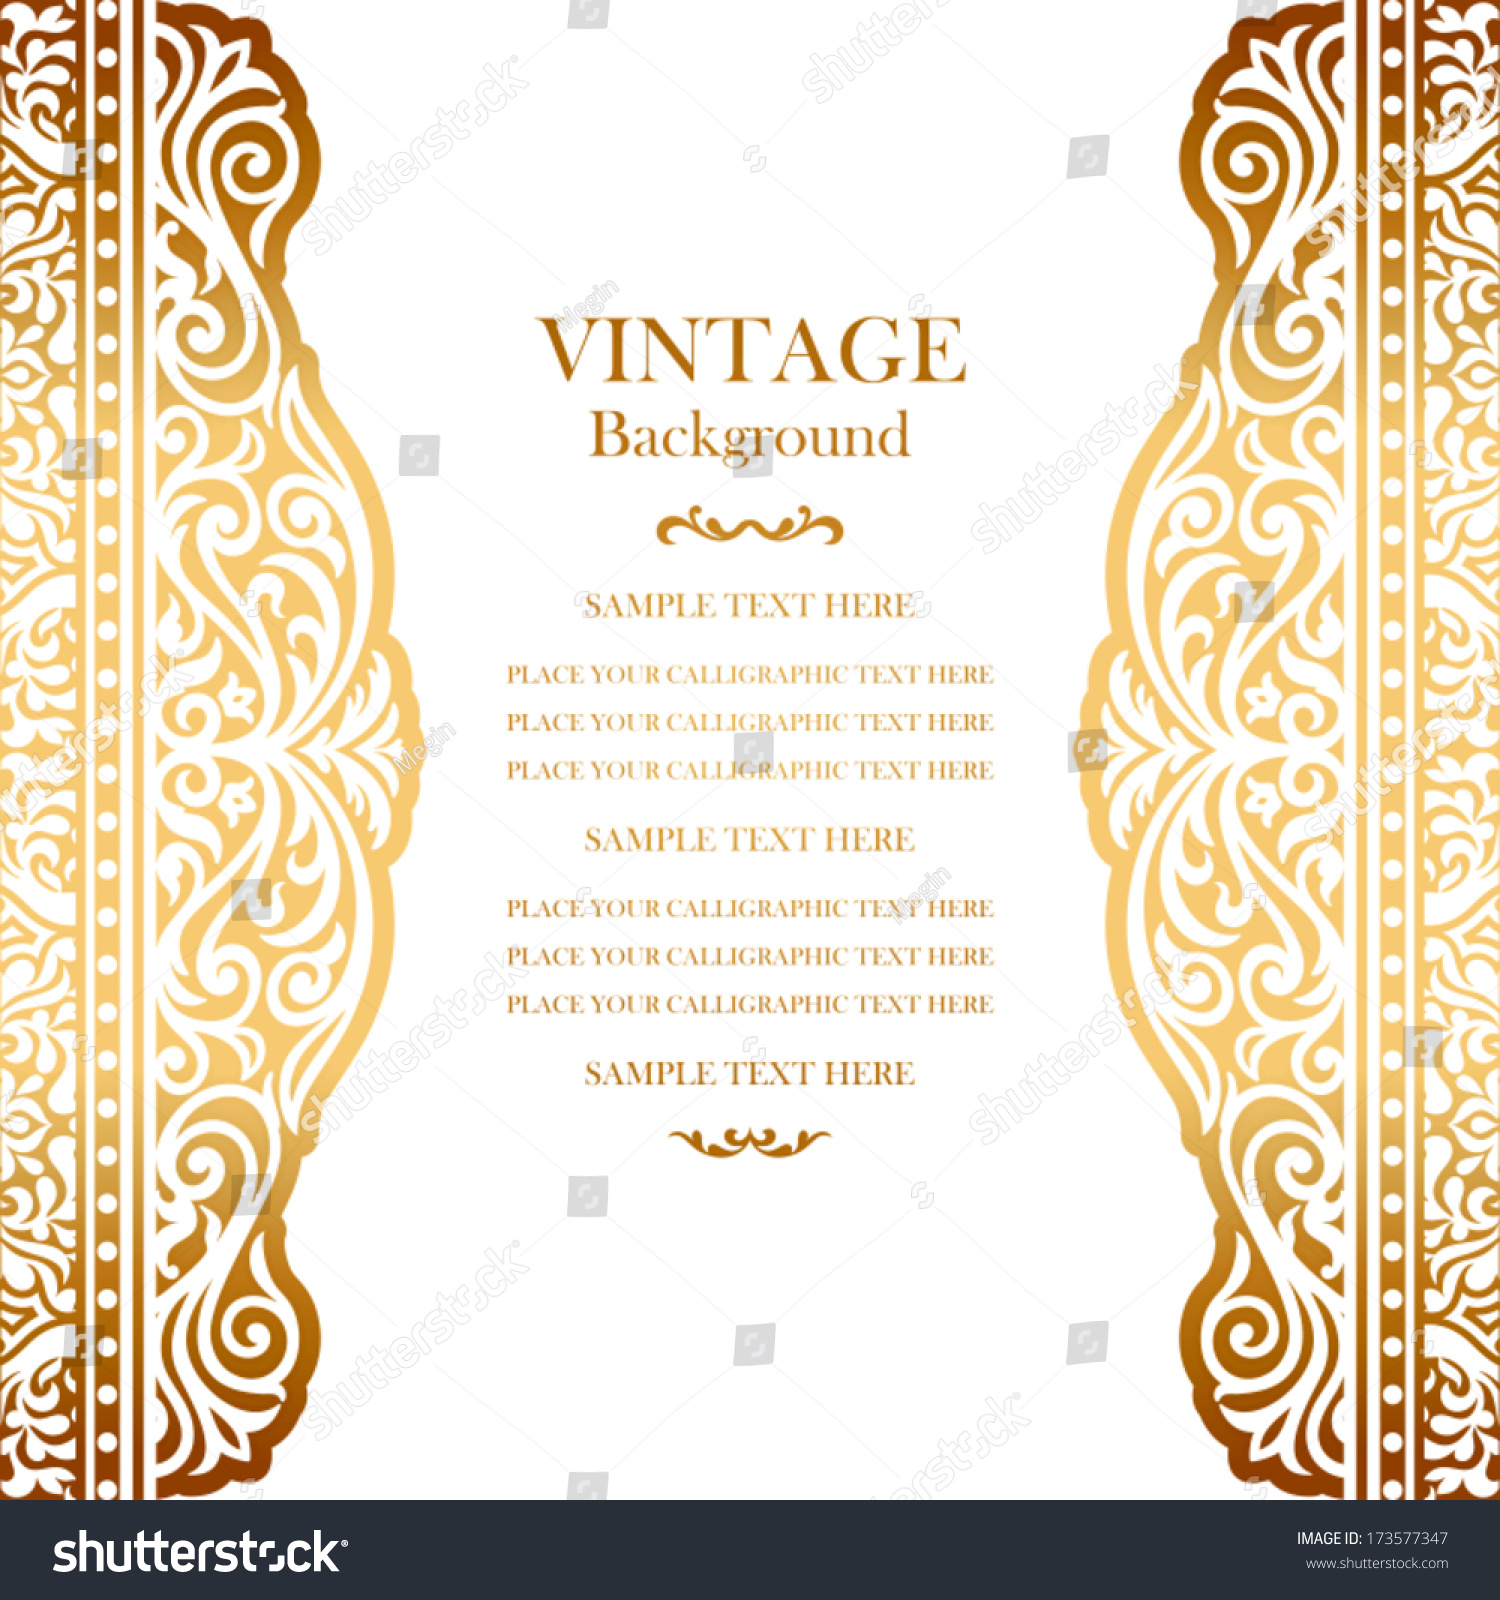 Vintage Book Cover Invitations ~ Vintage gold background design elegant book cover